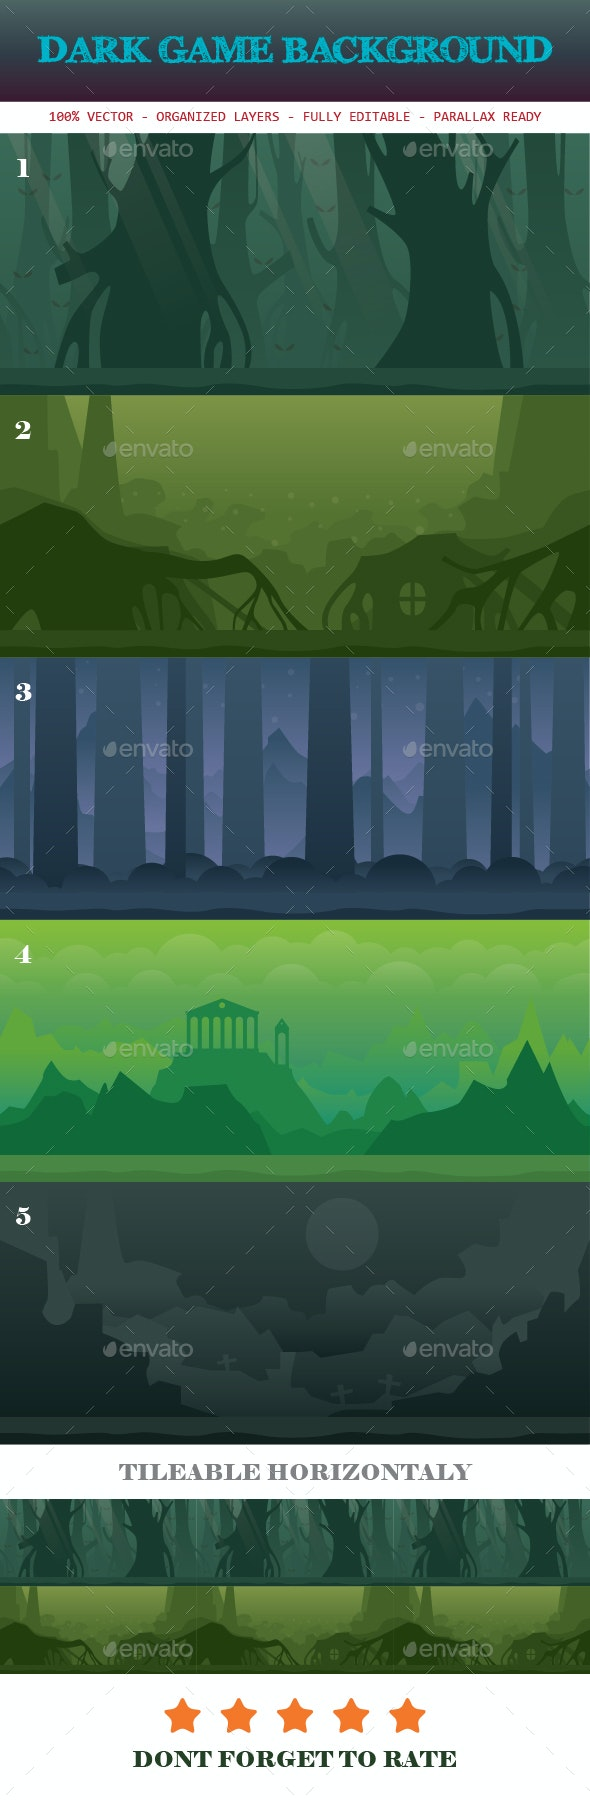 Dark Game Background Template - Backgrounds Game Assets